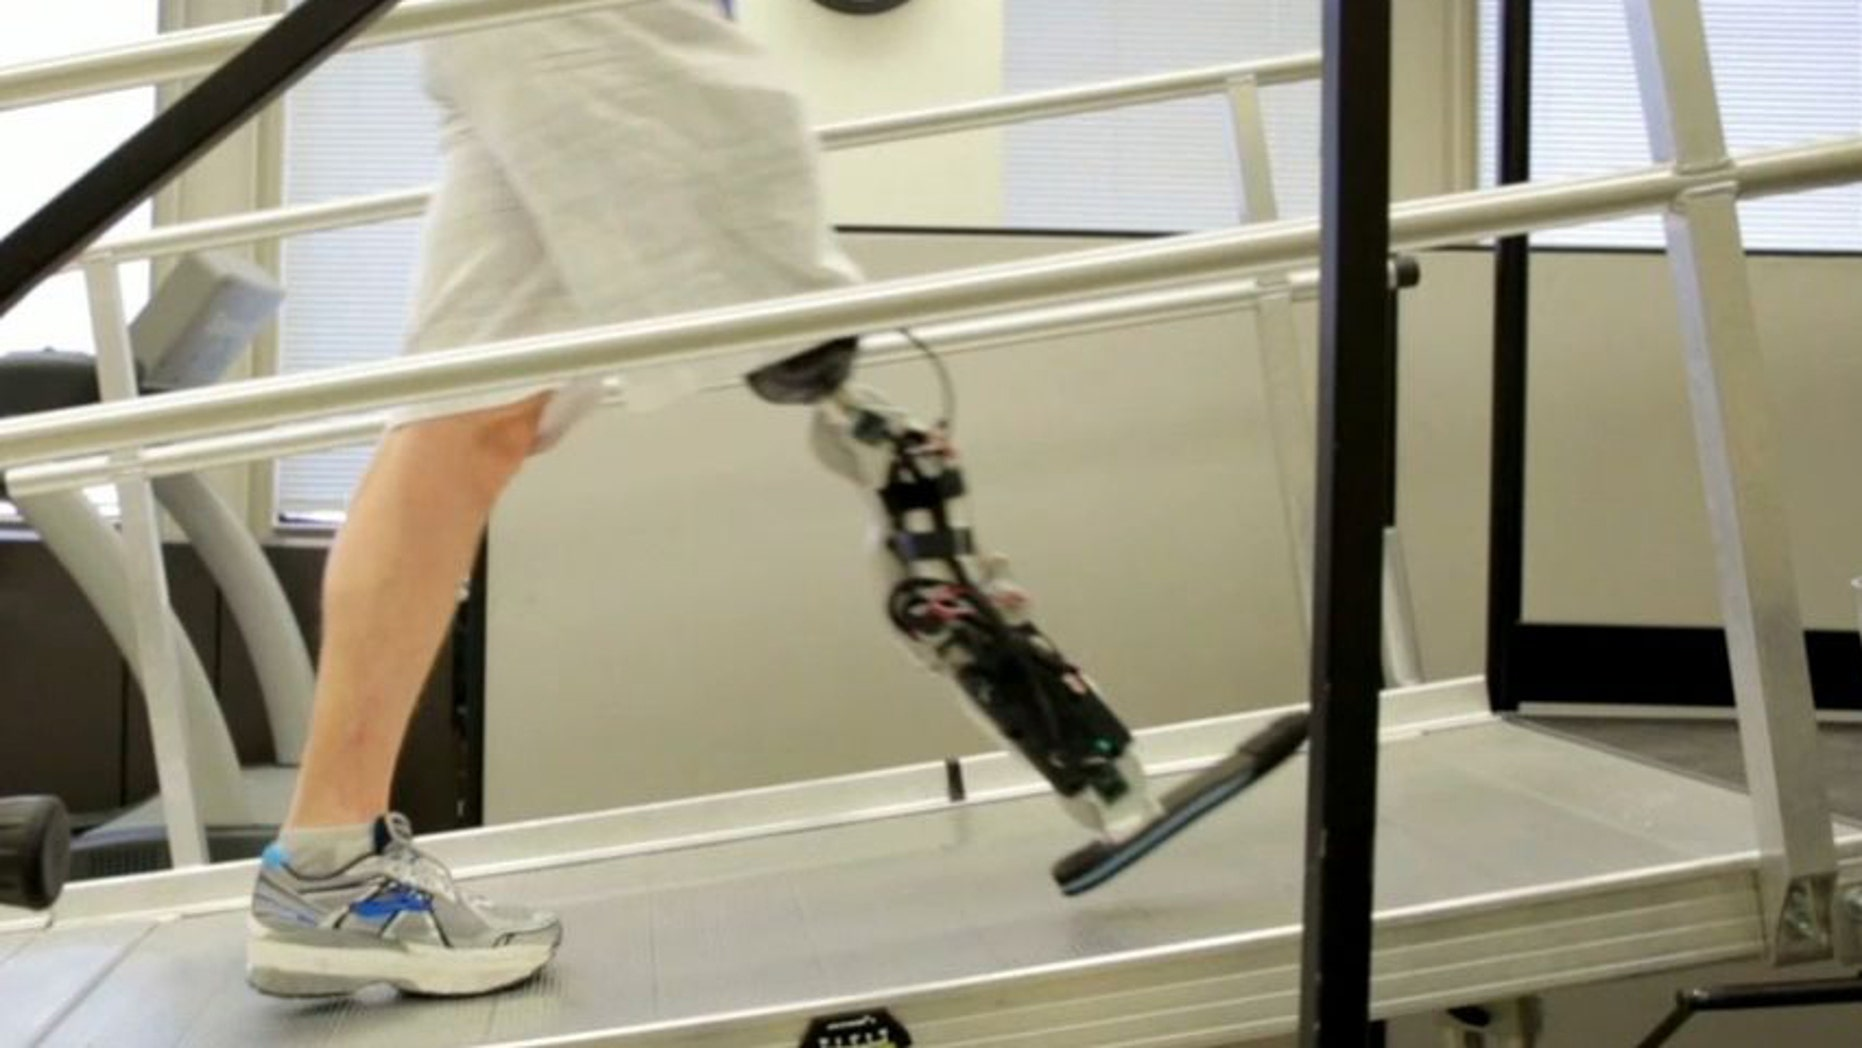 Zac Vawter, who lost his leg below the knee after a motorcycle accident four years, is the first amputee with a thought-controlled bionic leg.